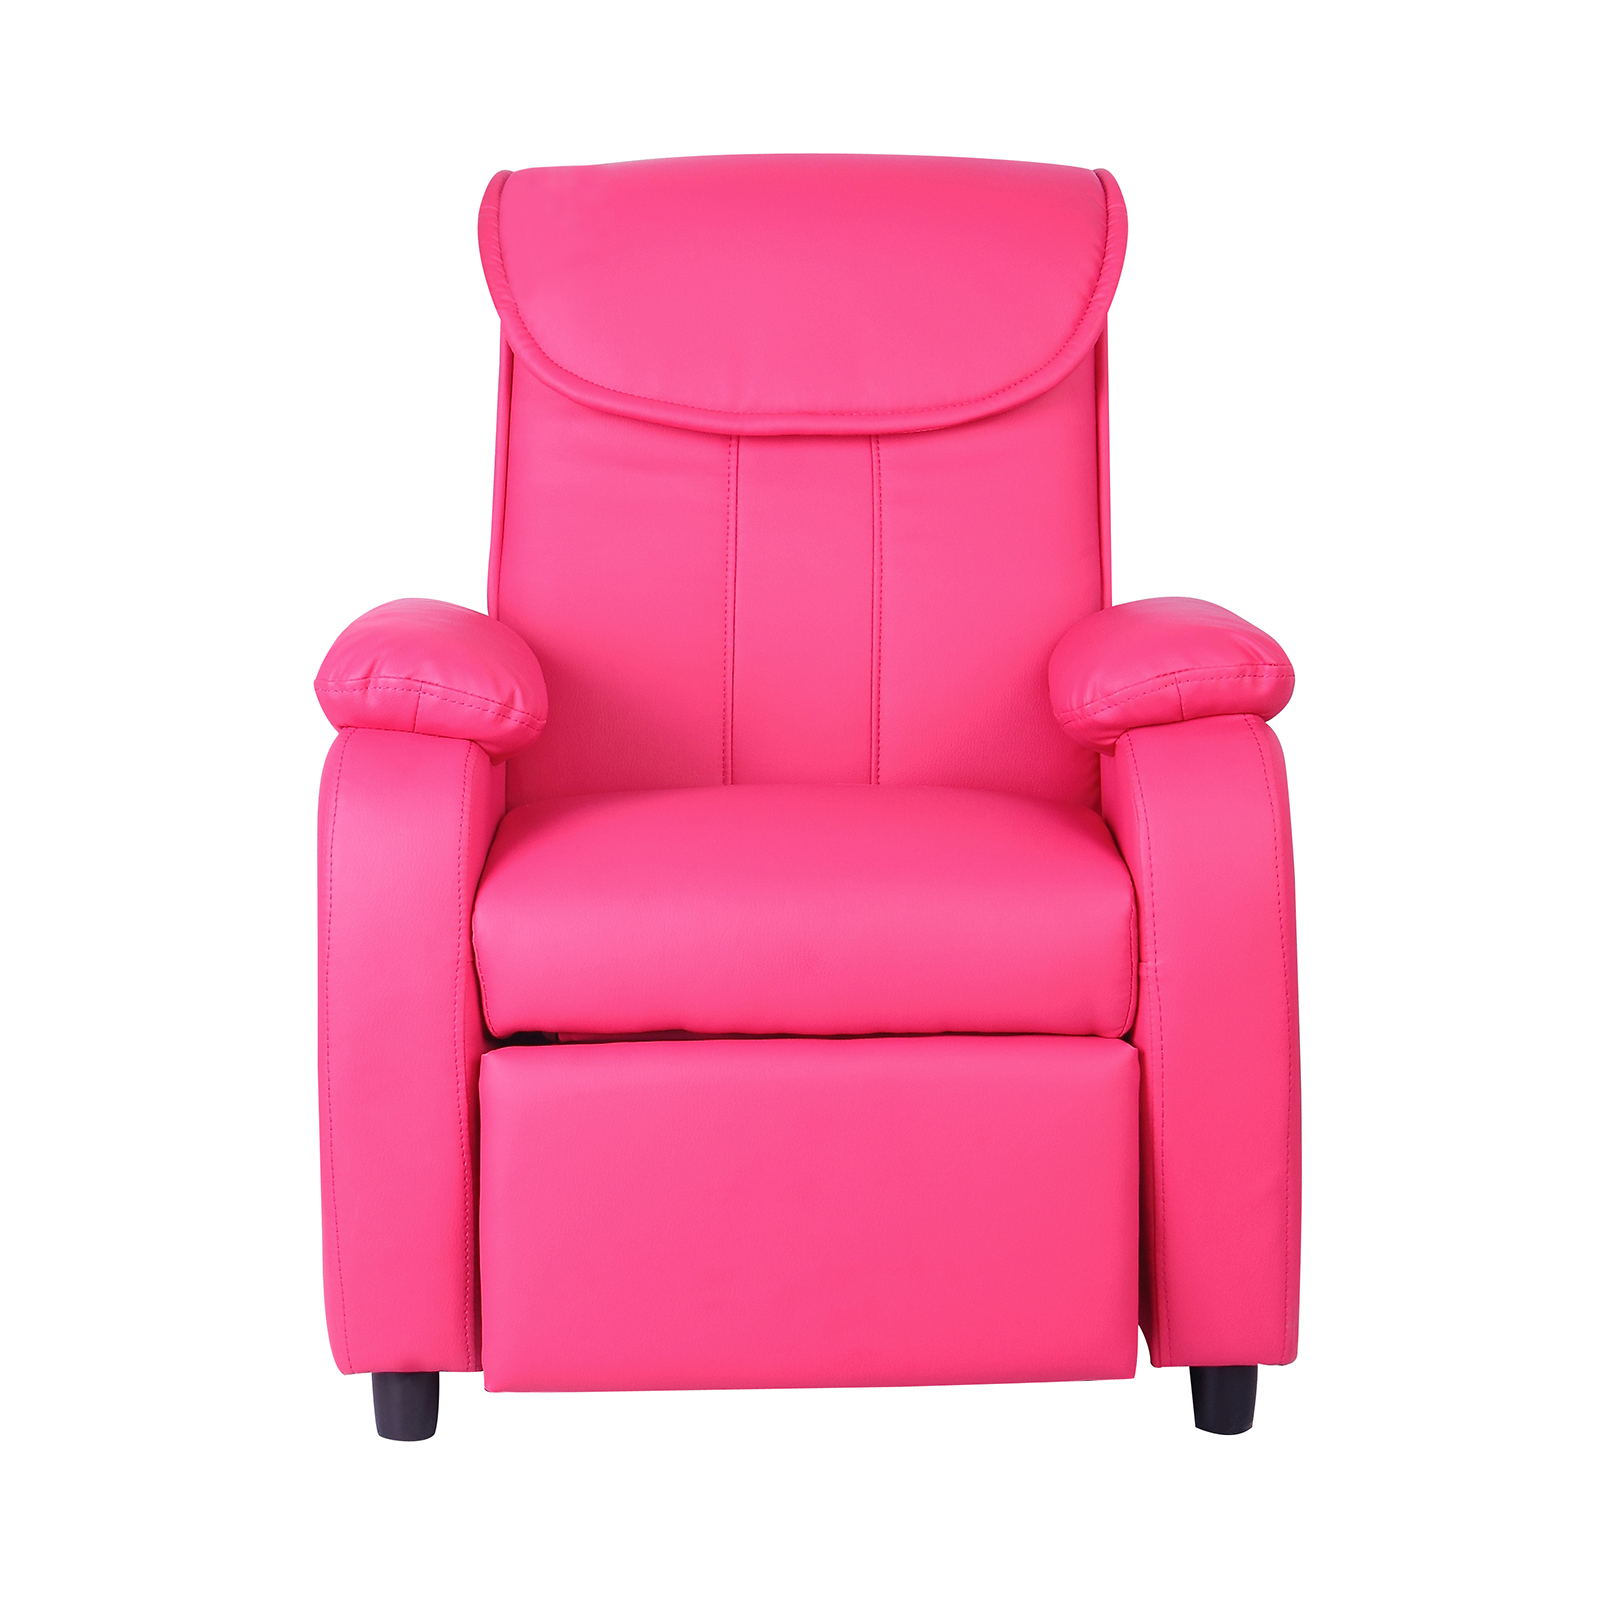 comfy chairs for toddlers wedding chair covers with arms uk childrens luxury recliner faux leather